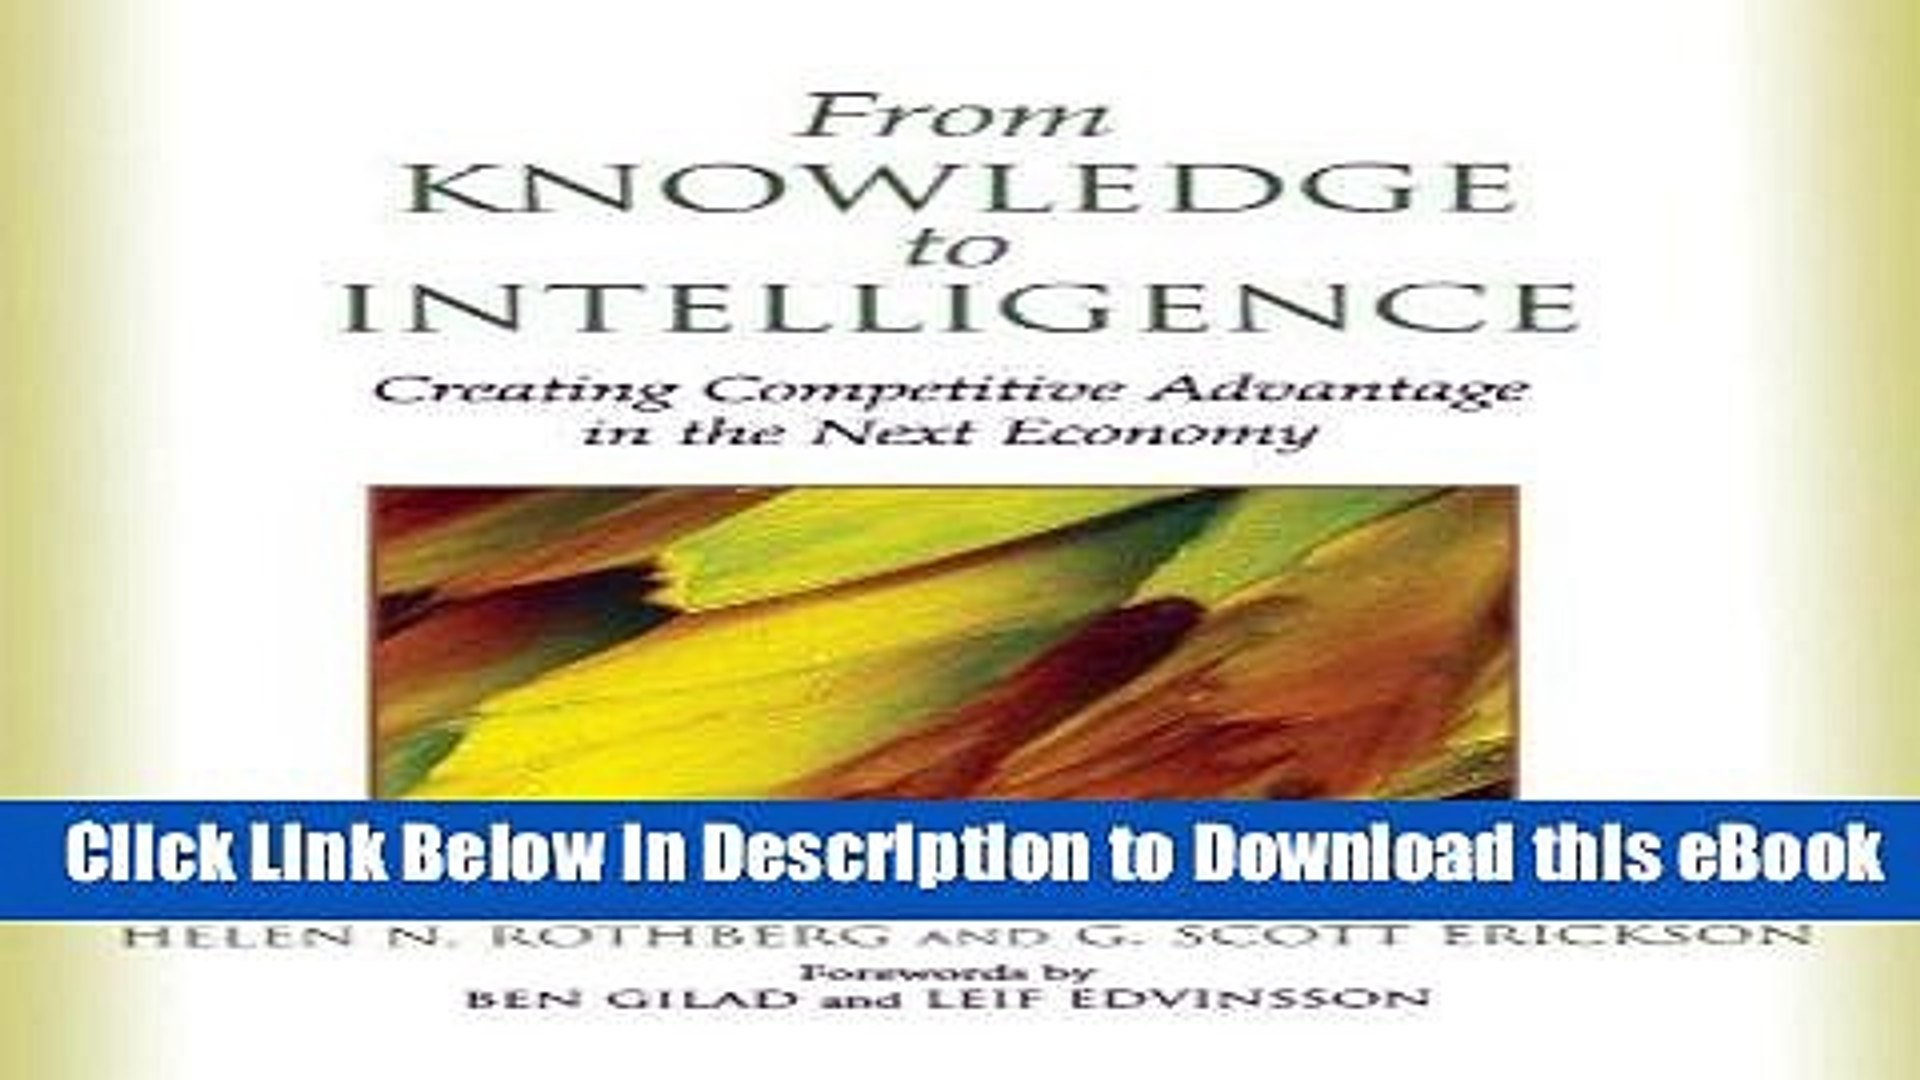 From Knowledge to Intelligence: Creating Competitive Advantage in the Next Economy